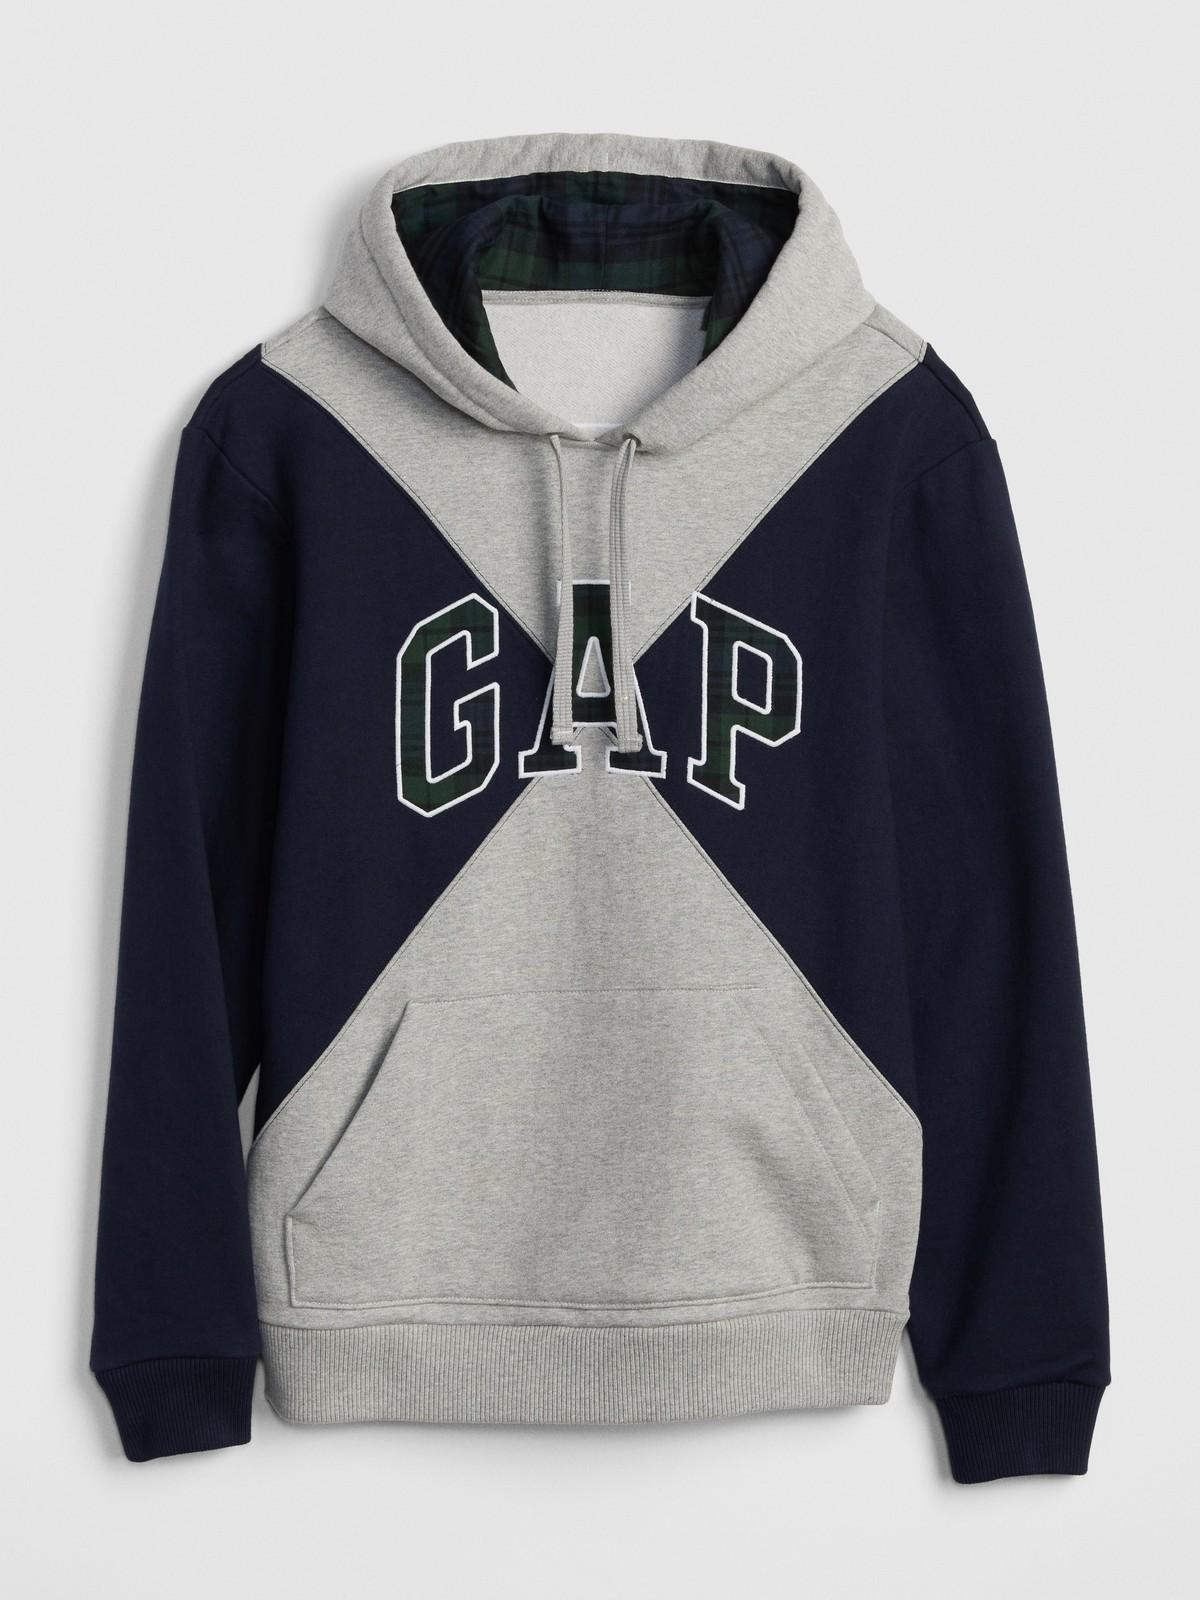 Gap felpe limited edition 2018